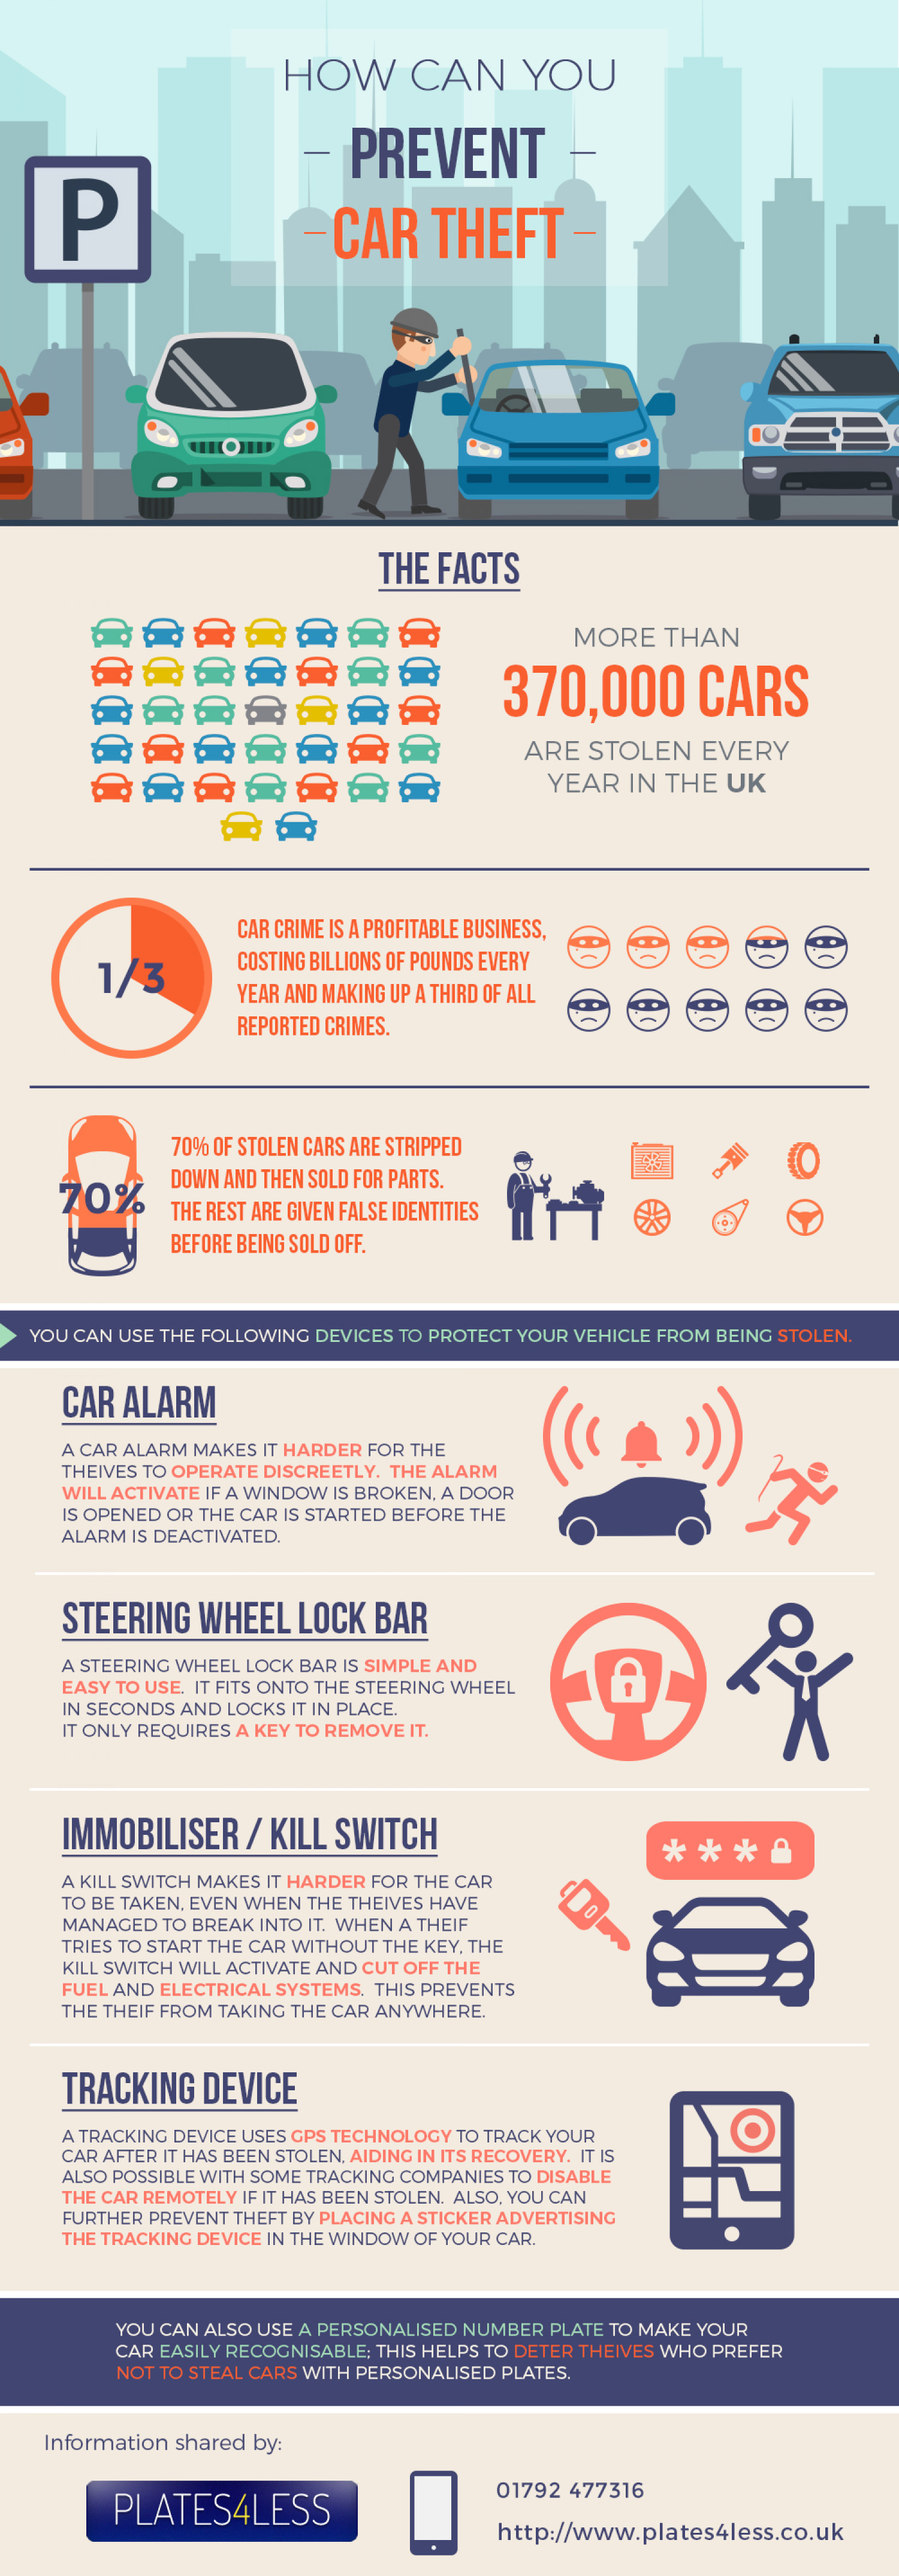 HOW CAN YOU PREVENT CAR THEFT Infographic